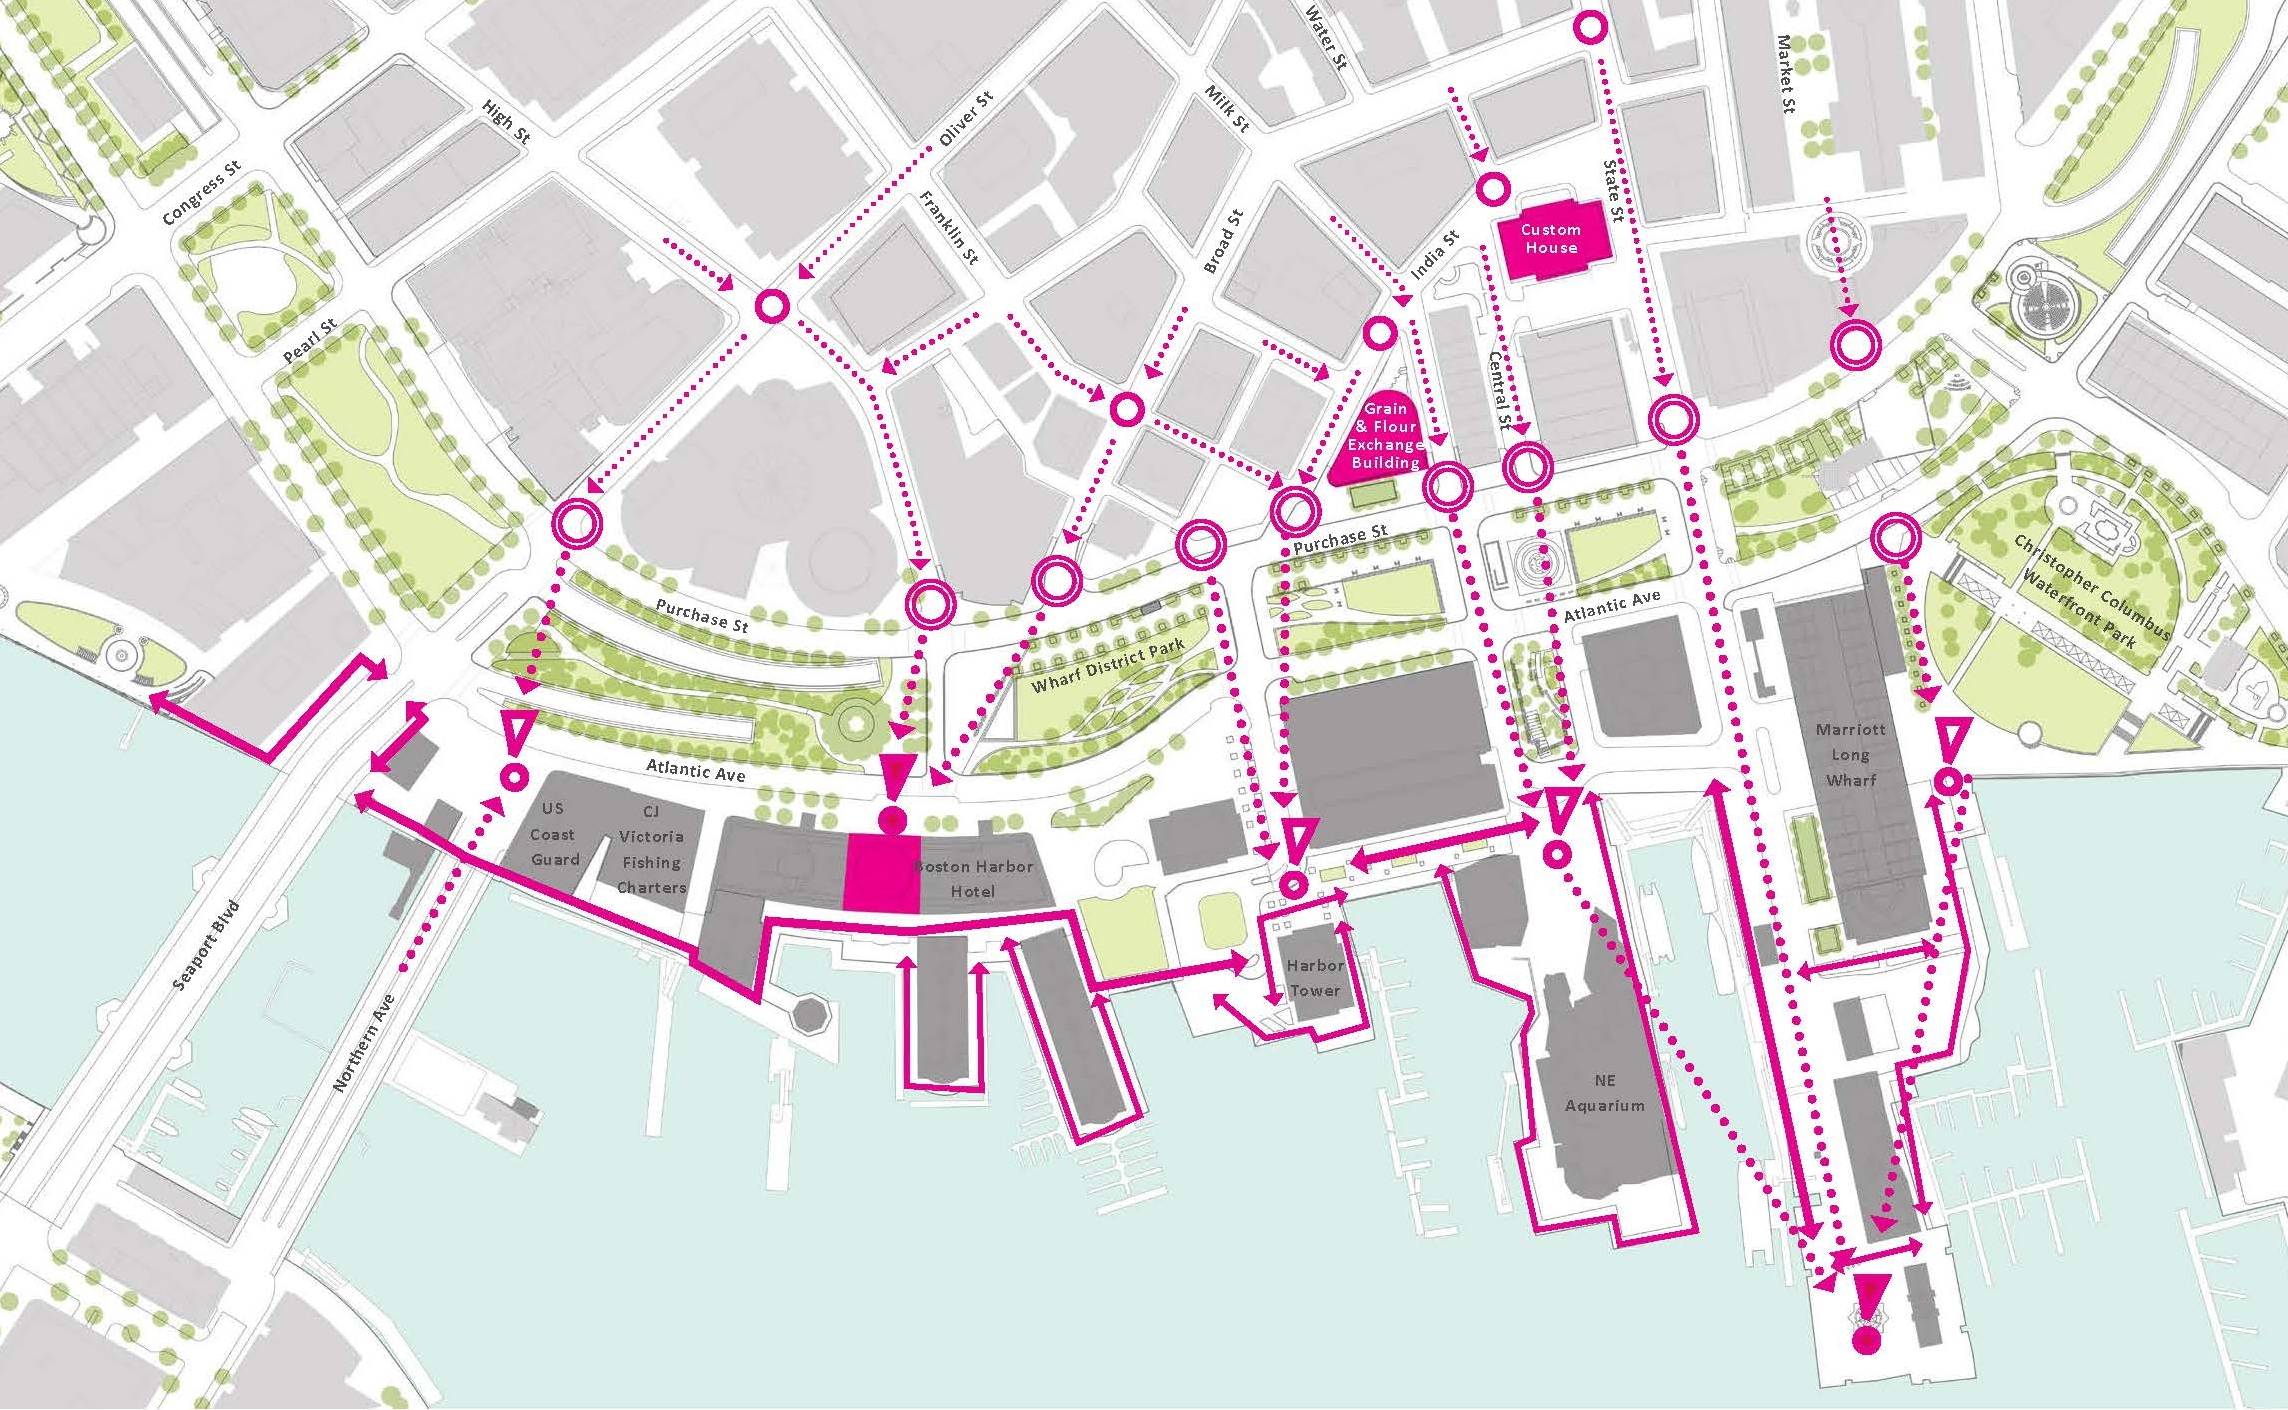 16.09.27 WD Public Realm Vision Draft_Page_04.jpg